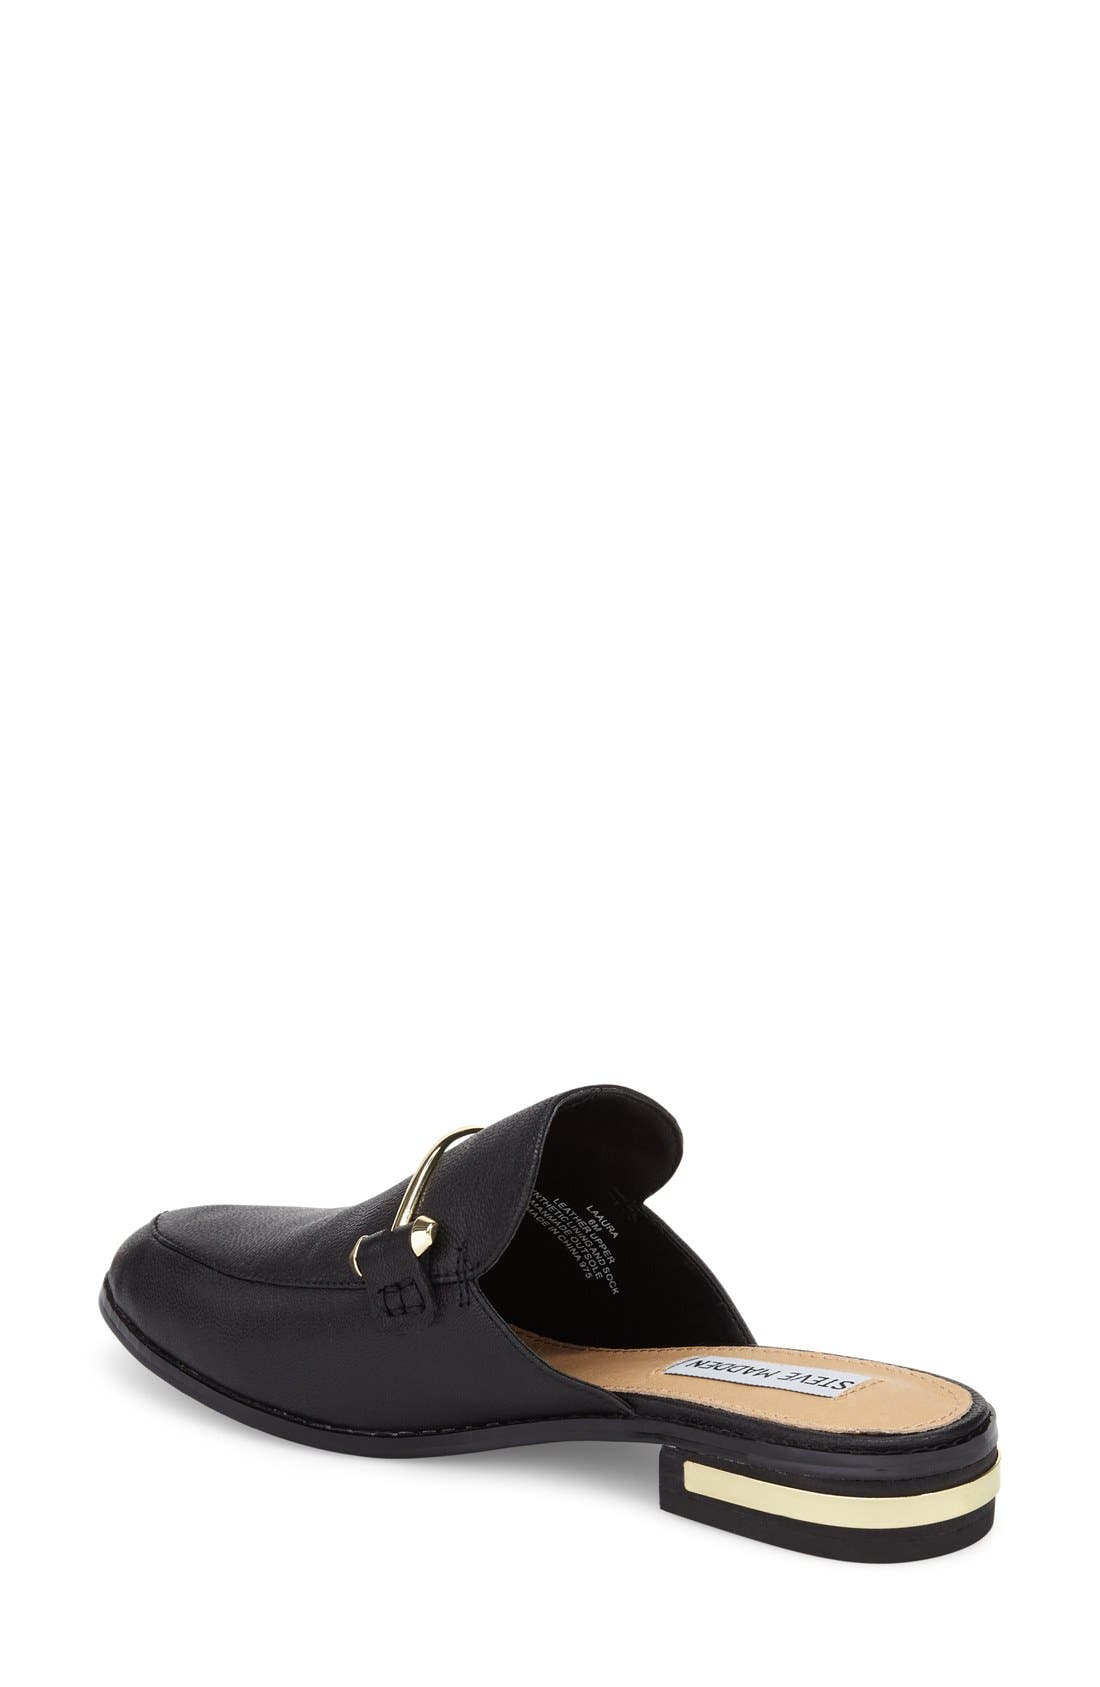 Alternate Image 2  - Steve Madden Laaura Backless Loafer (Women)